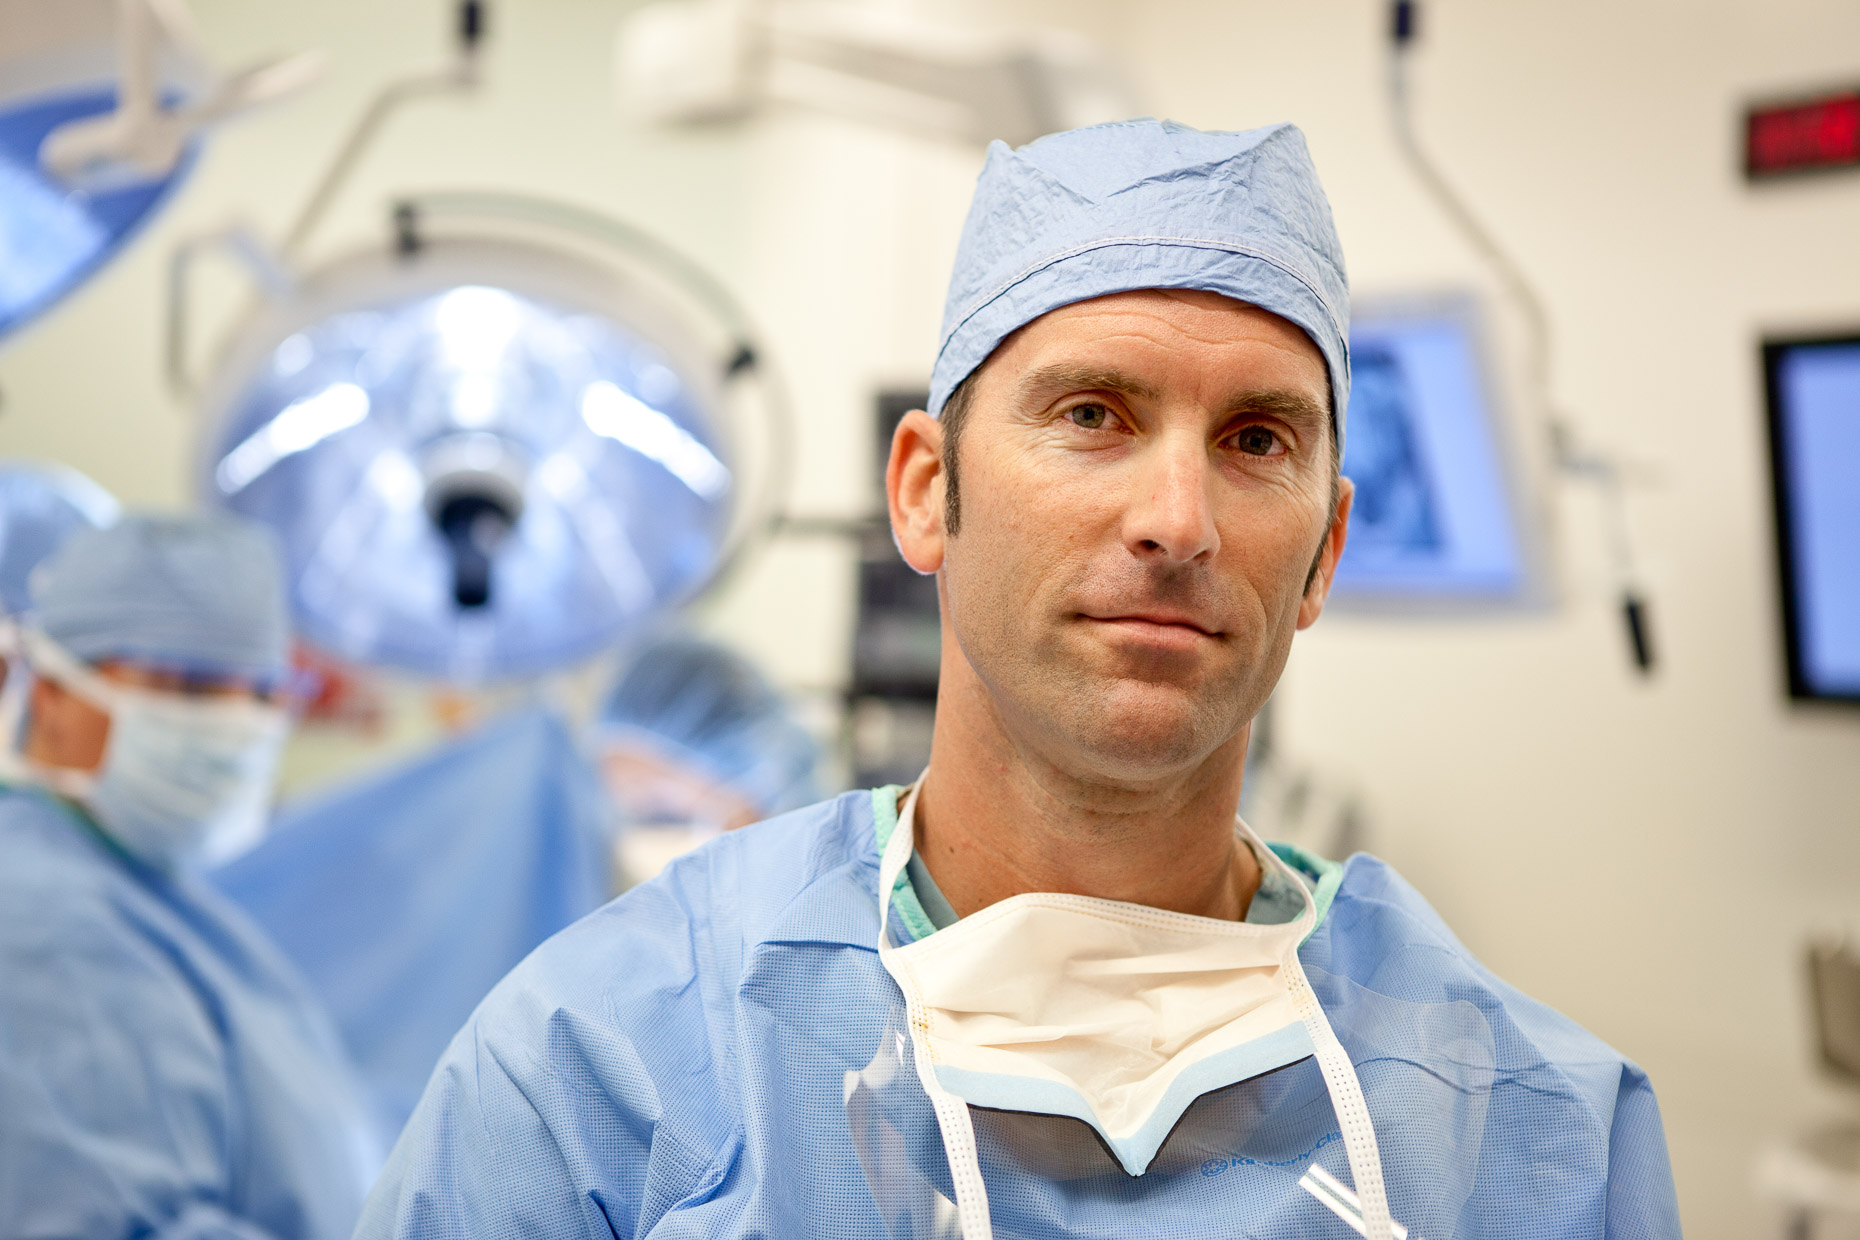 Portrait of surgeon in hospital operating room. Medical, healthcare. David Zaitz Photography.